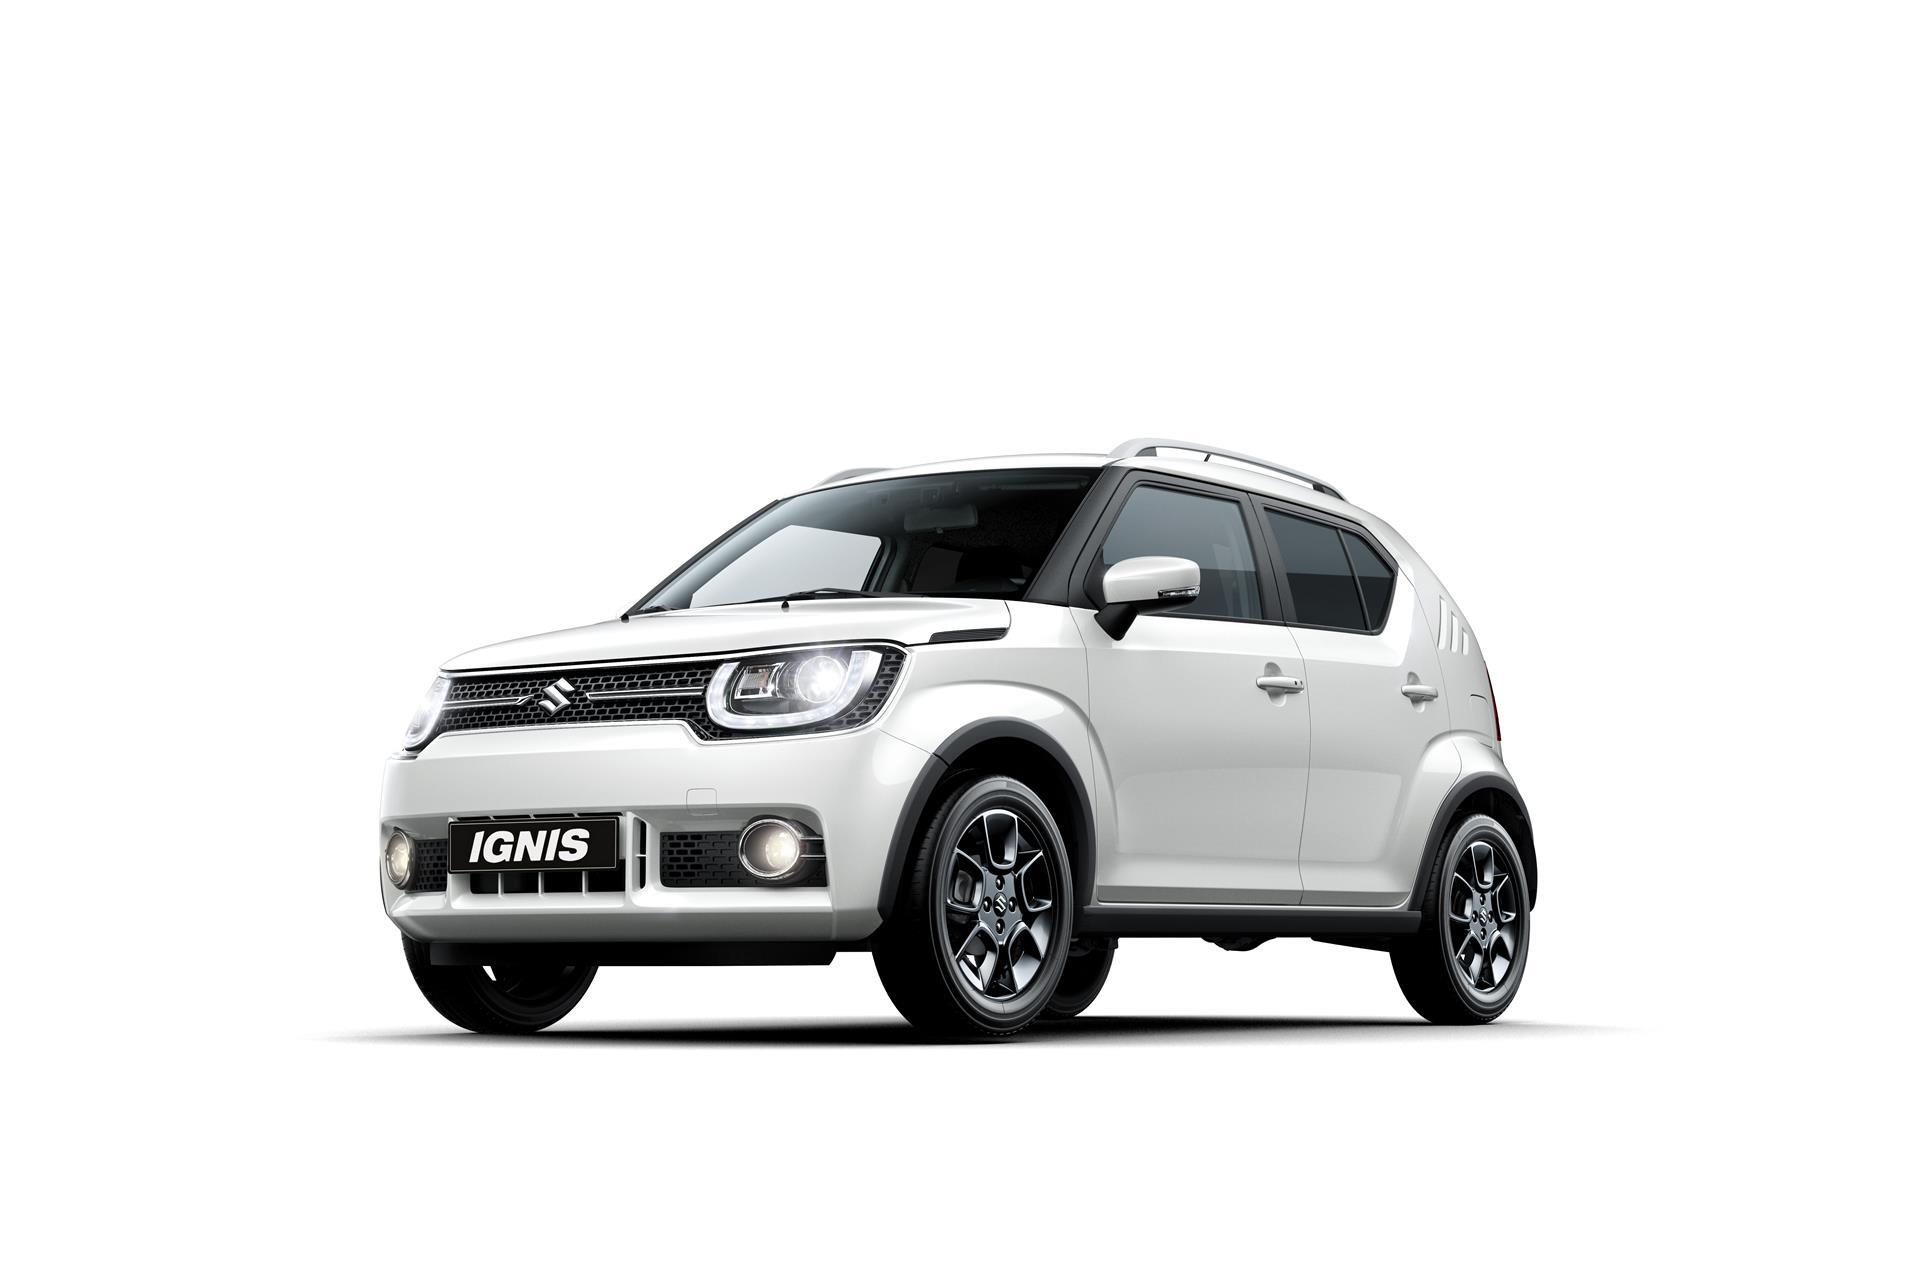 2016 suzuki ignis news and information. Black Bedroom Furniture Sets. Home Design Ideas